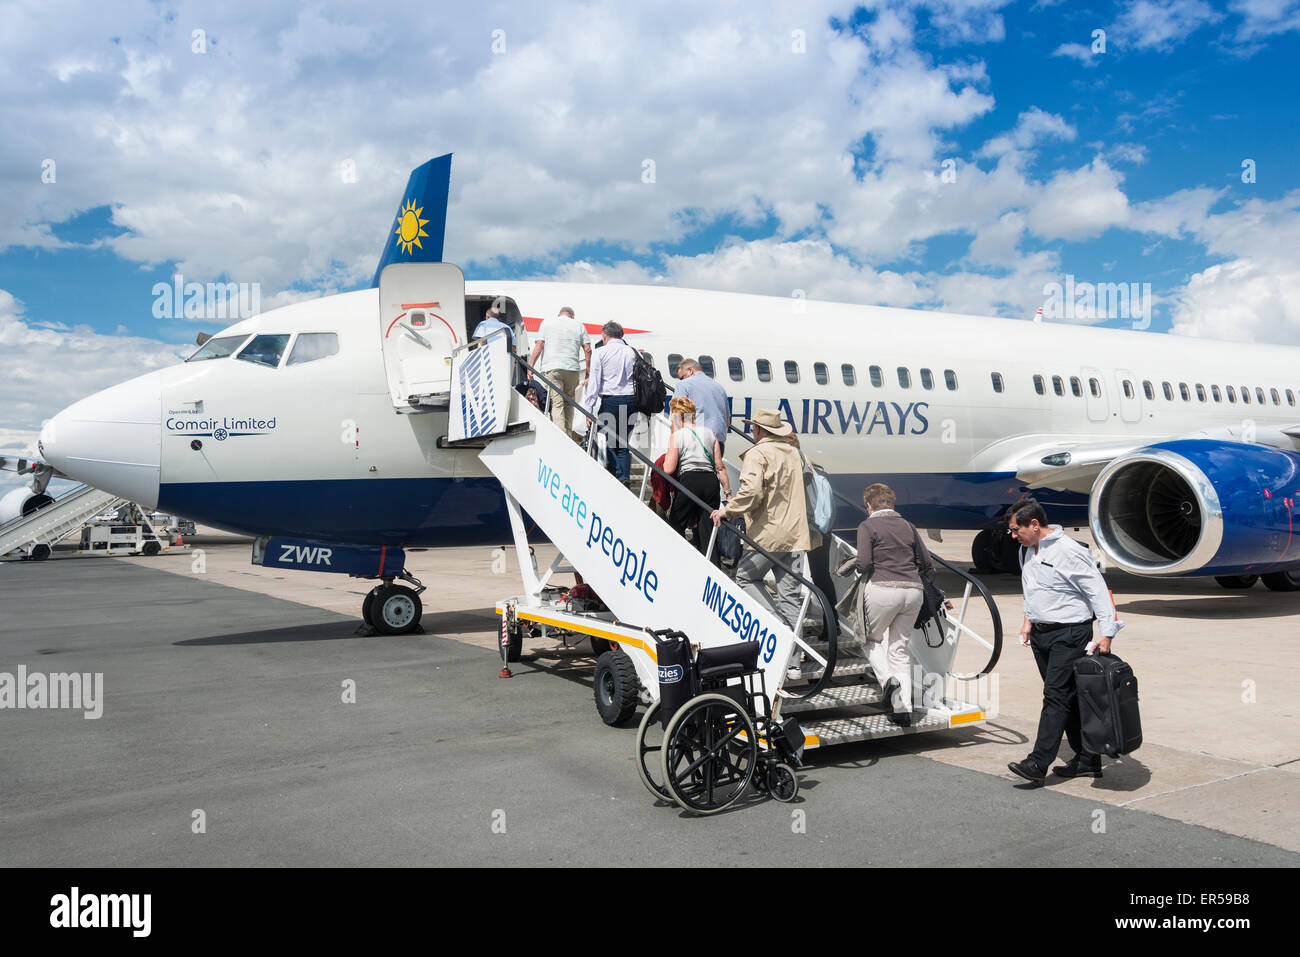 Passengers boarding British Airways (Comair) Boeing 737 at Hosea Kutako International Airport, Windhoek, Republic - Stock Image